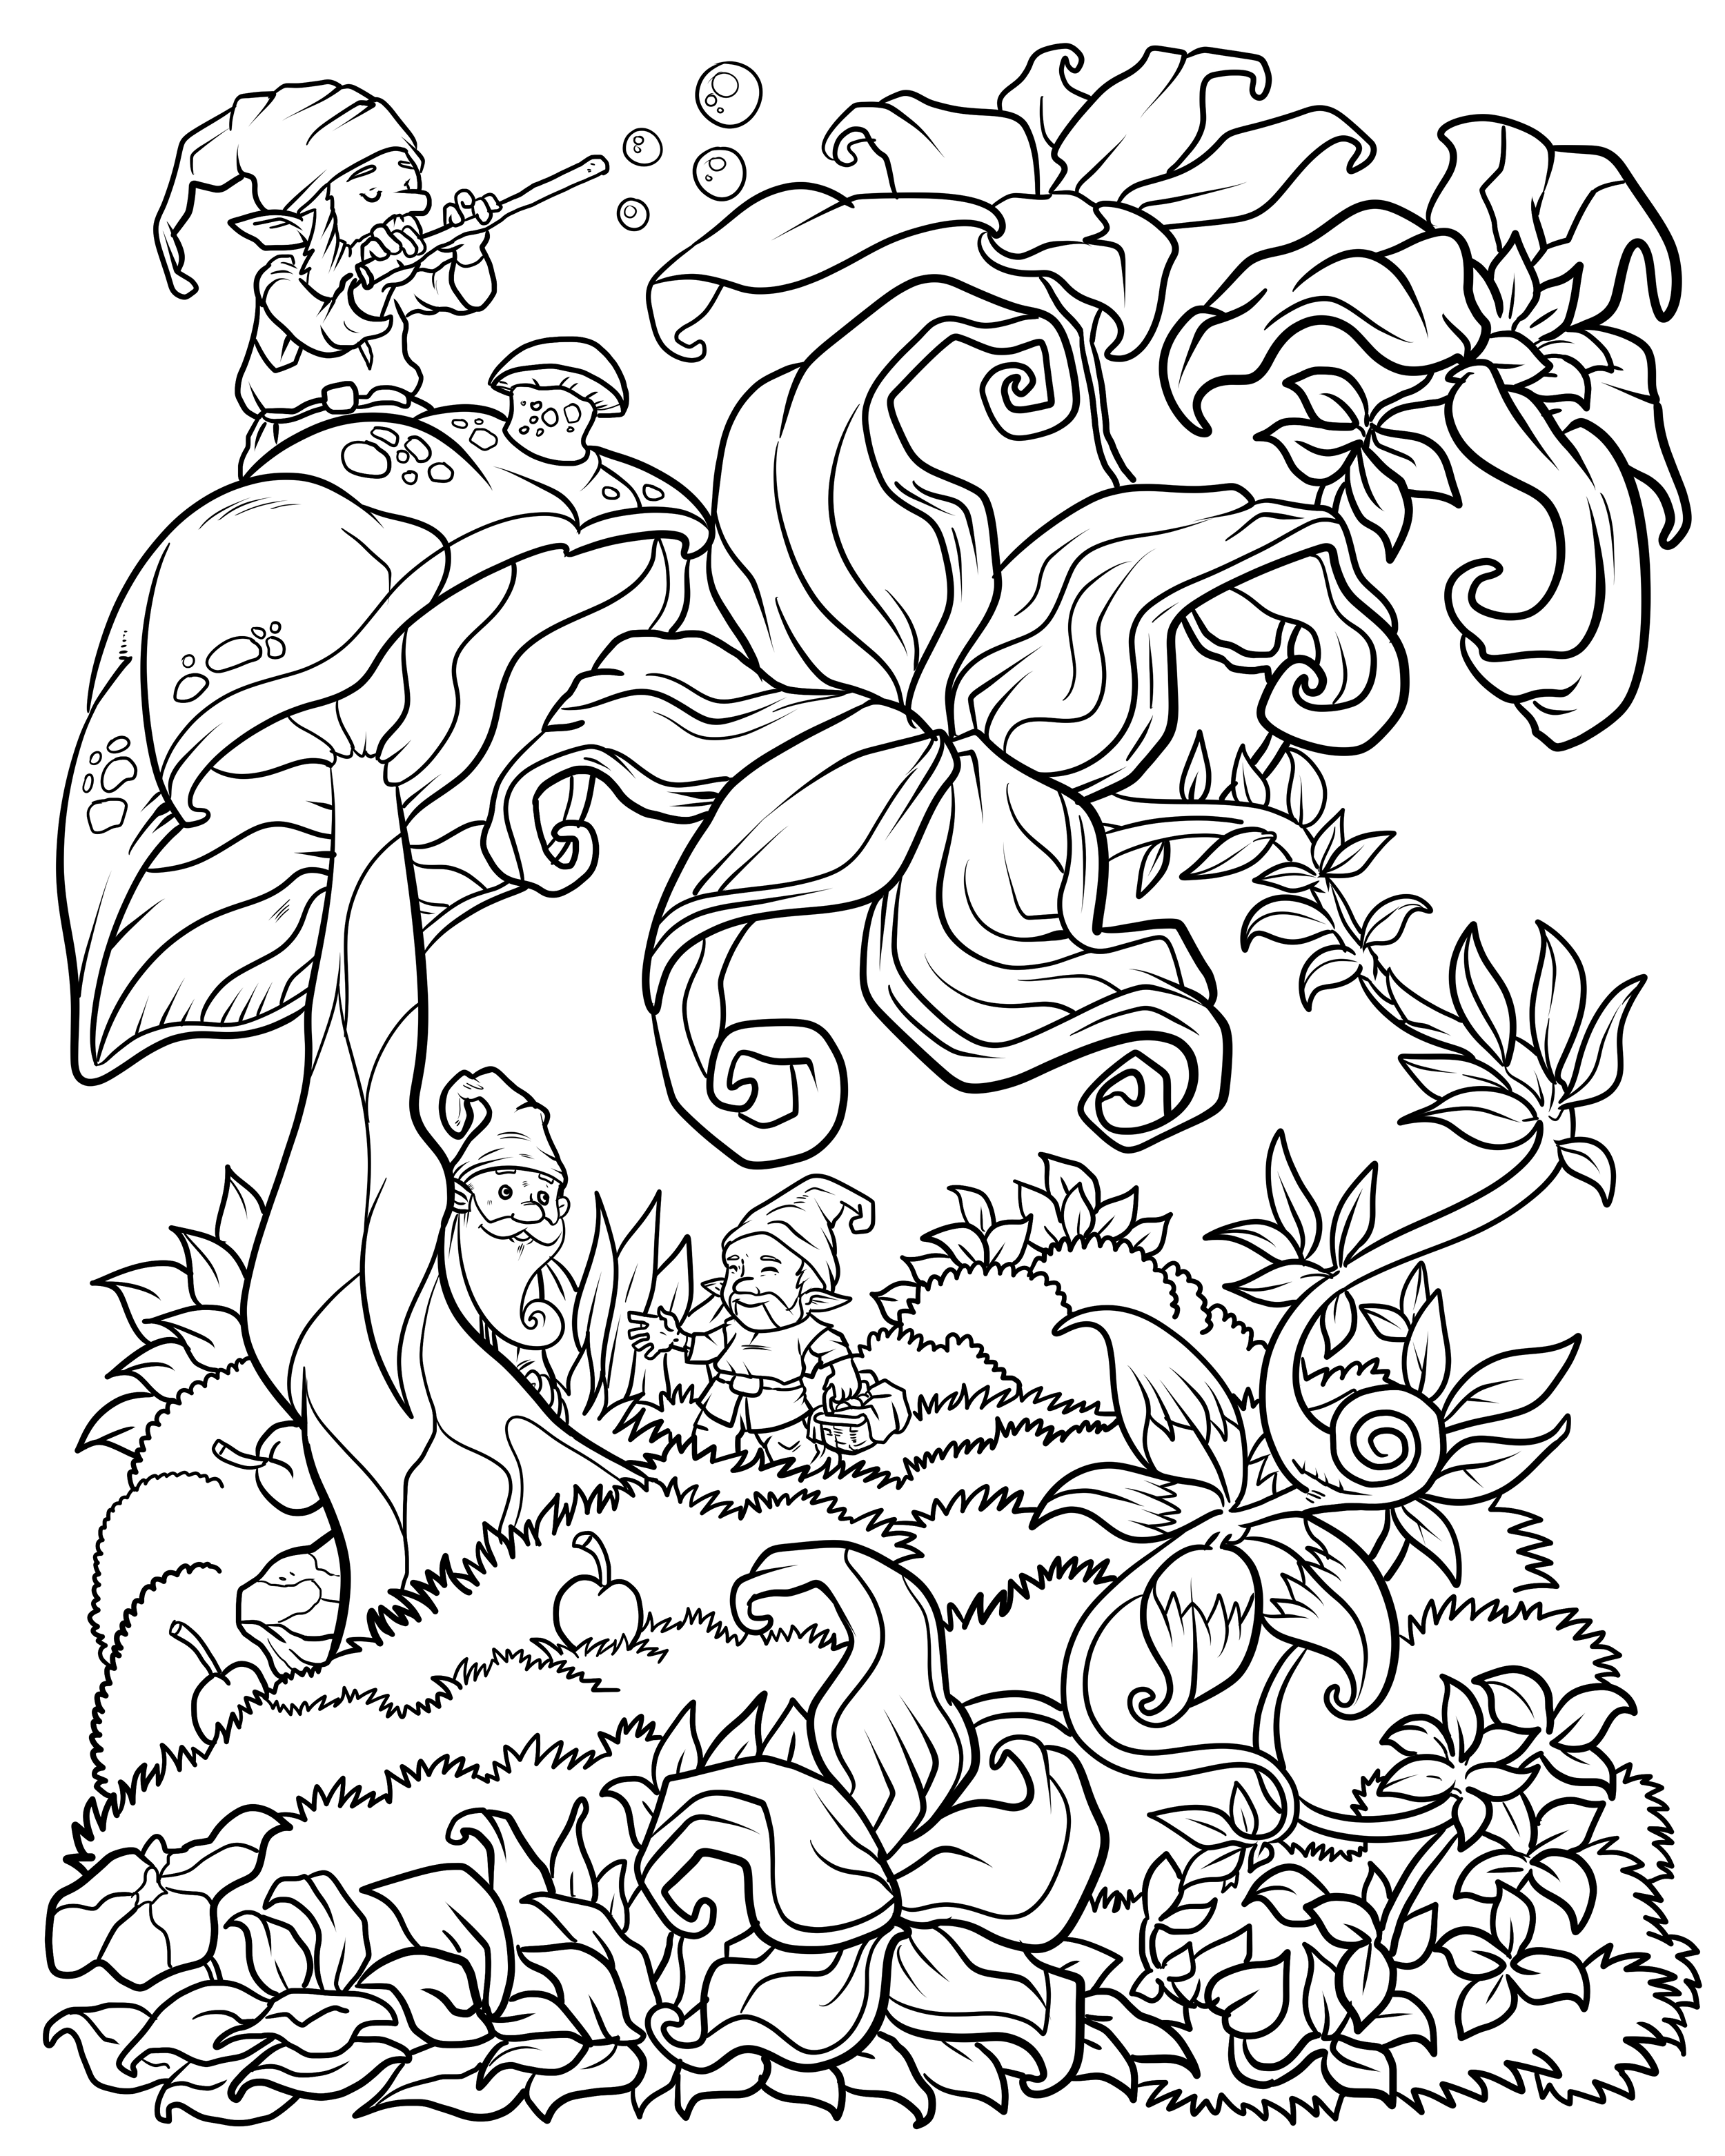 coloring adults floral coloring pages for adults best coloring pages for coloring adults